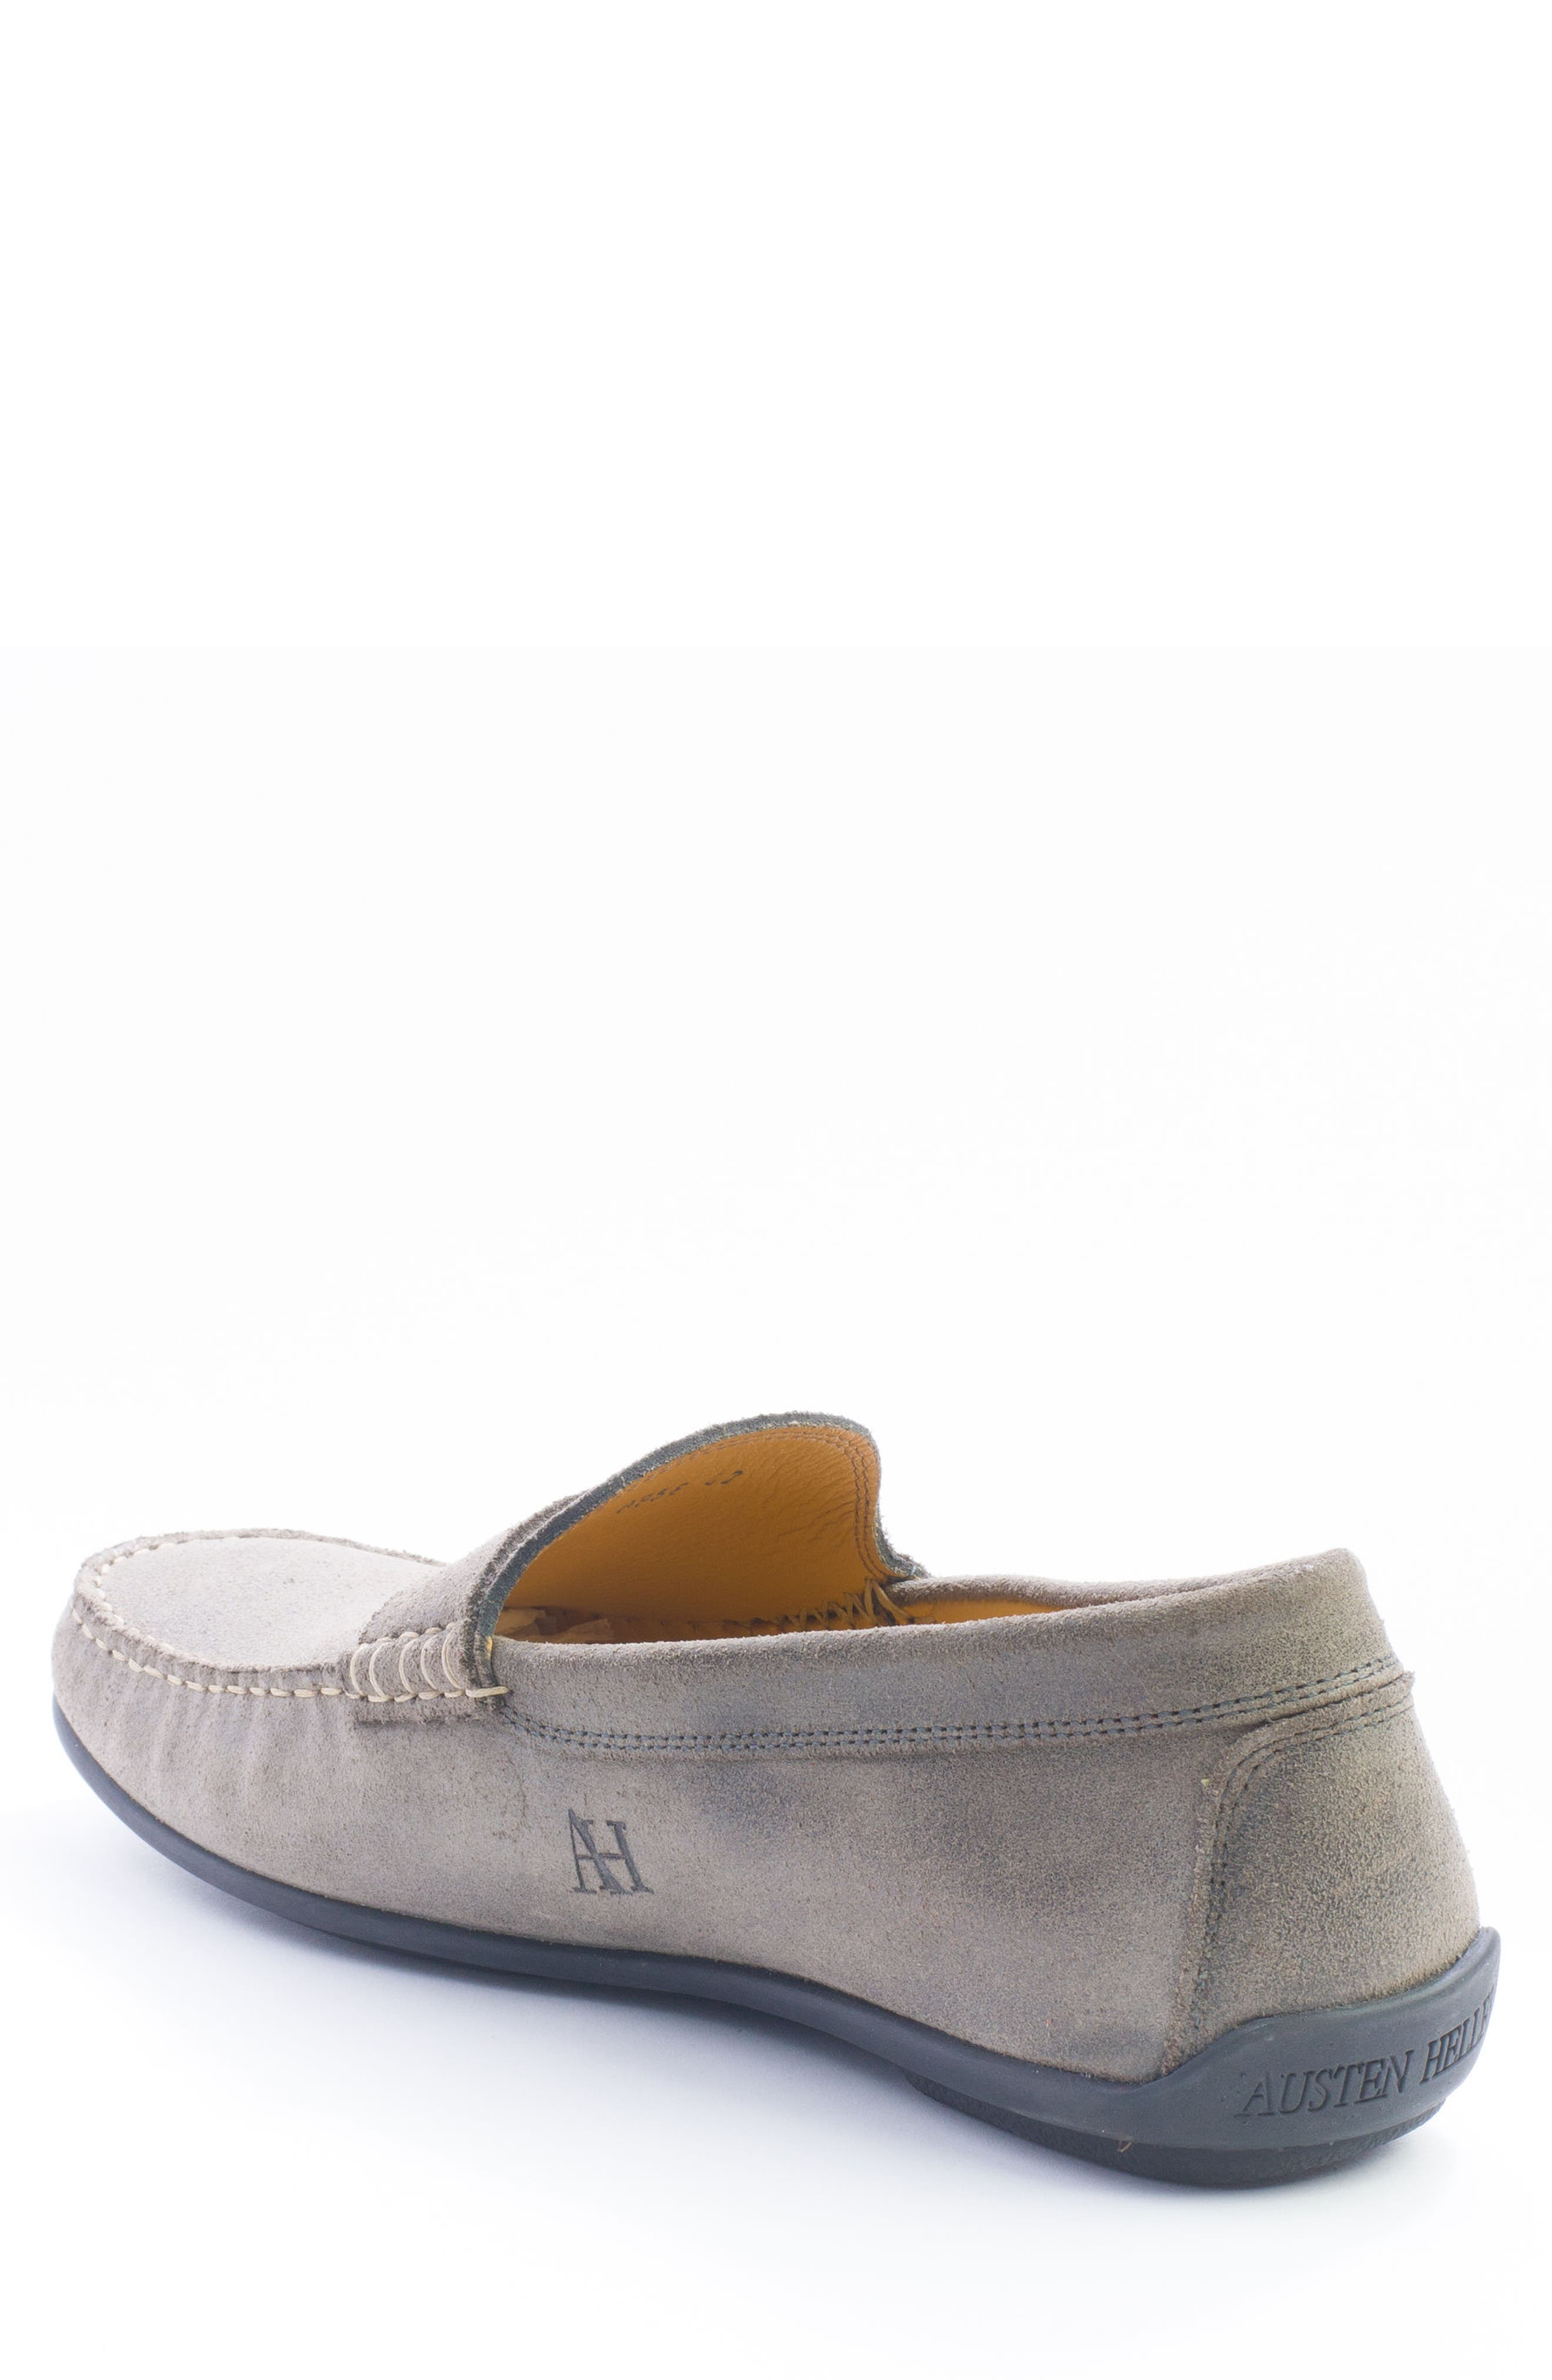 Barretts Penny Loafer,                             Alternate thumbnail 2, color,                             GREY